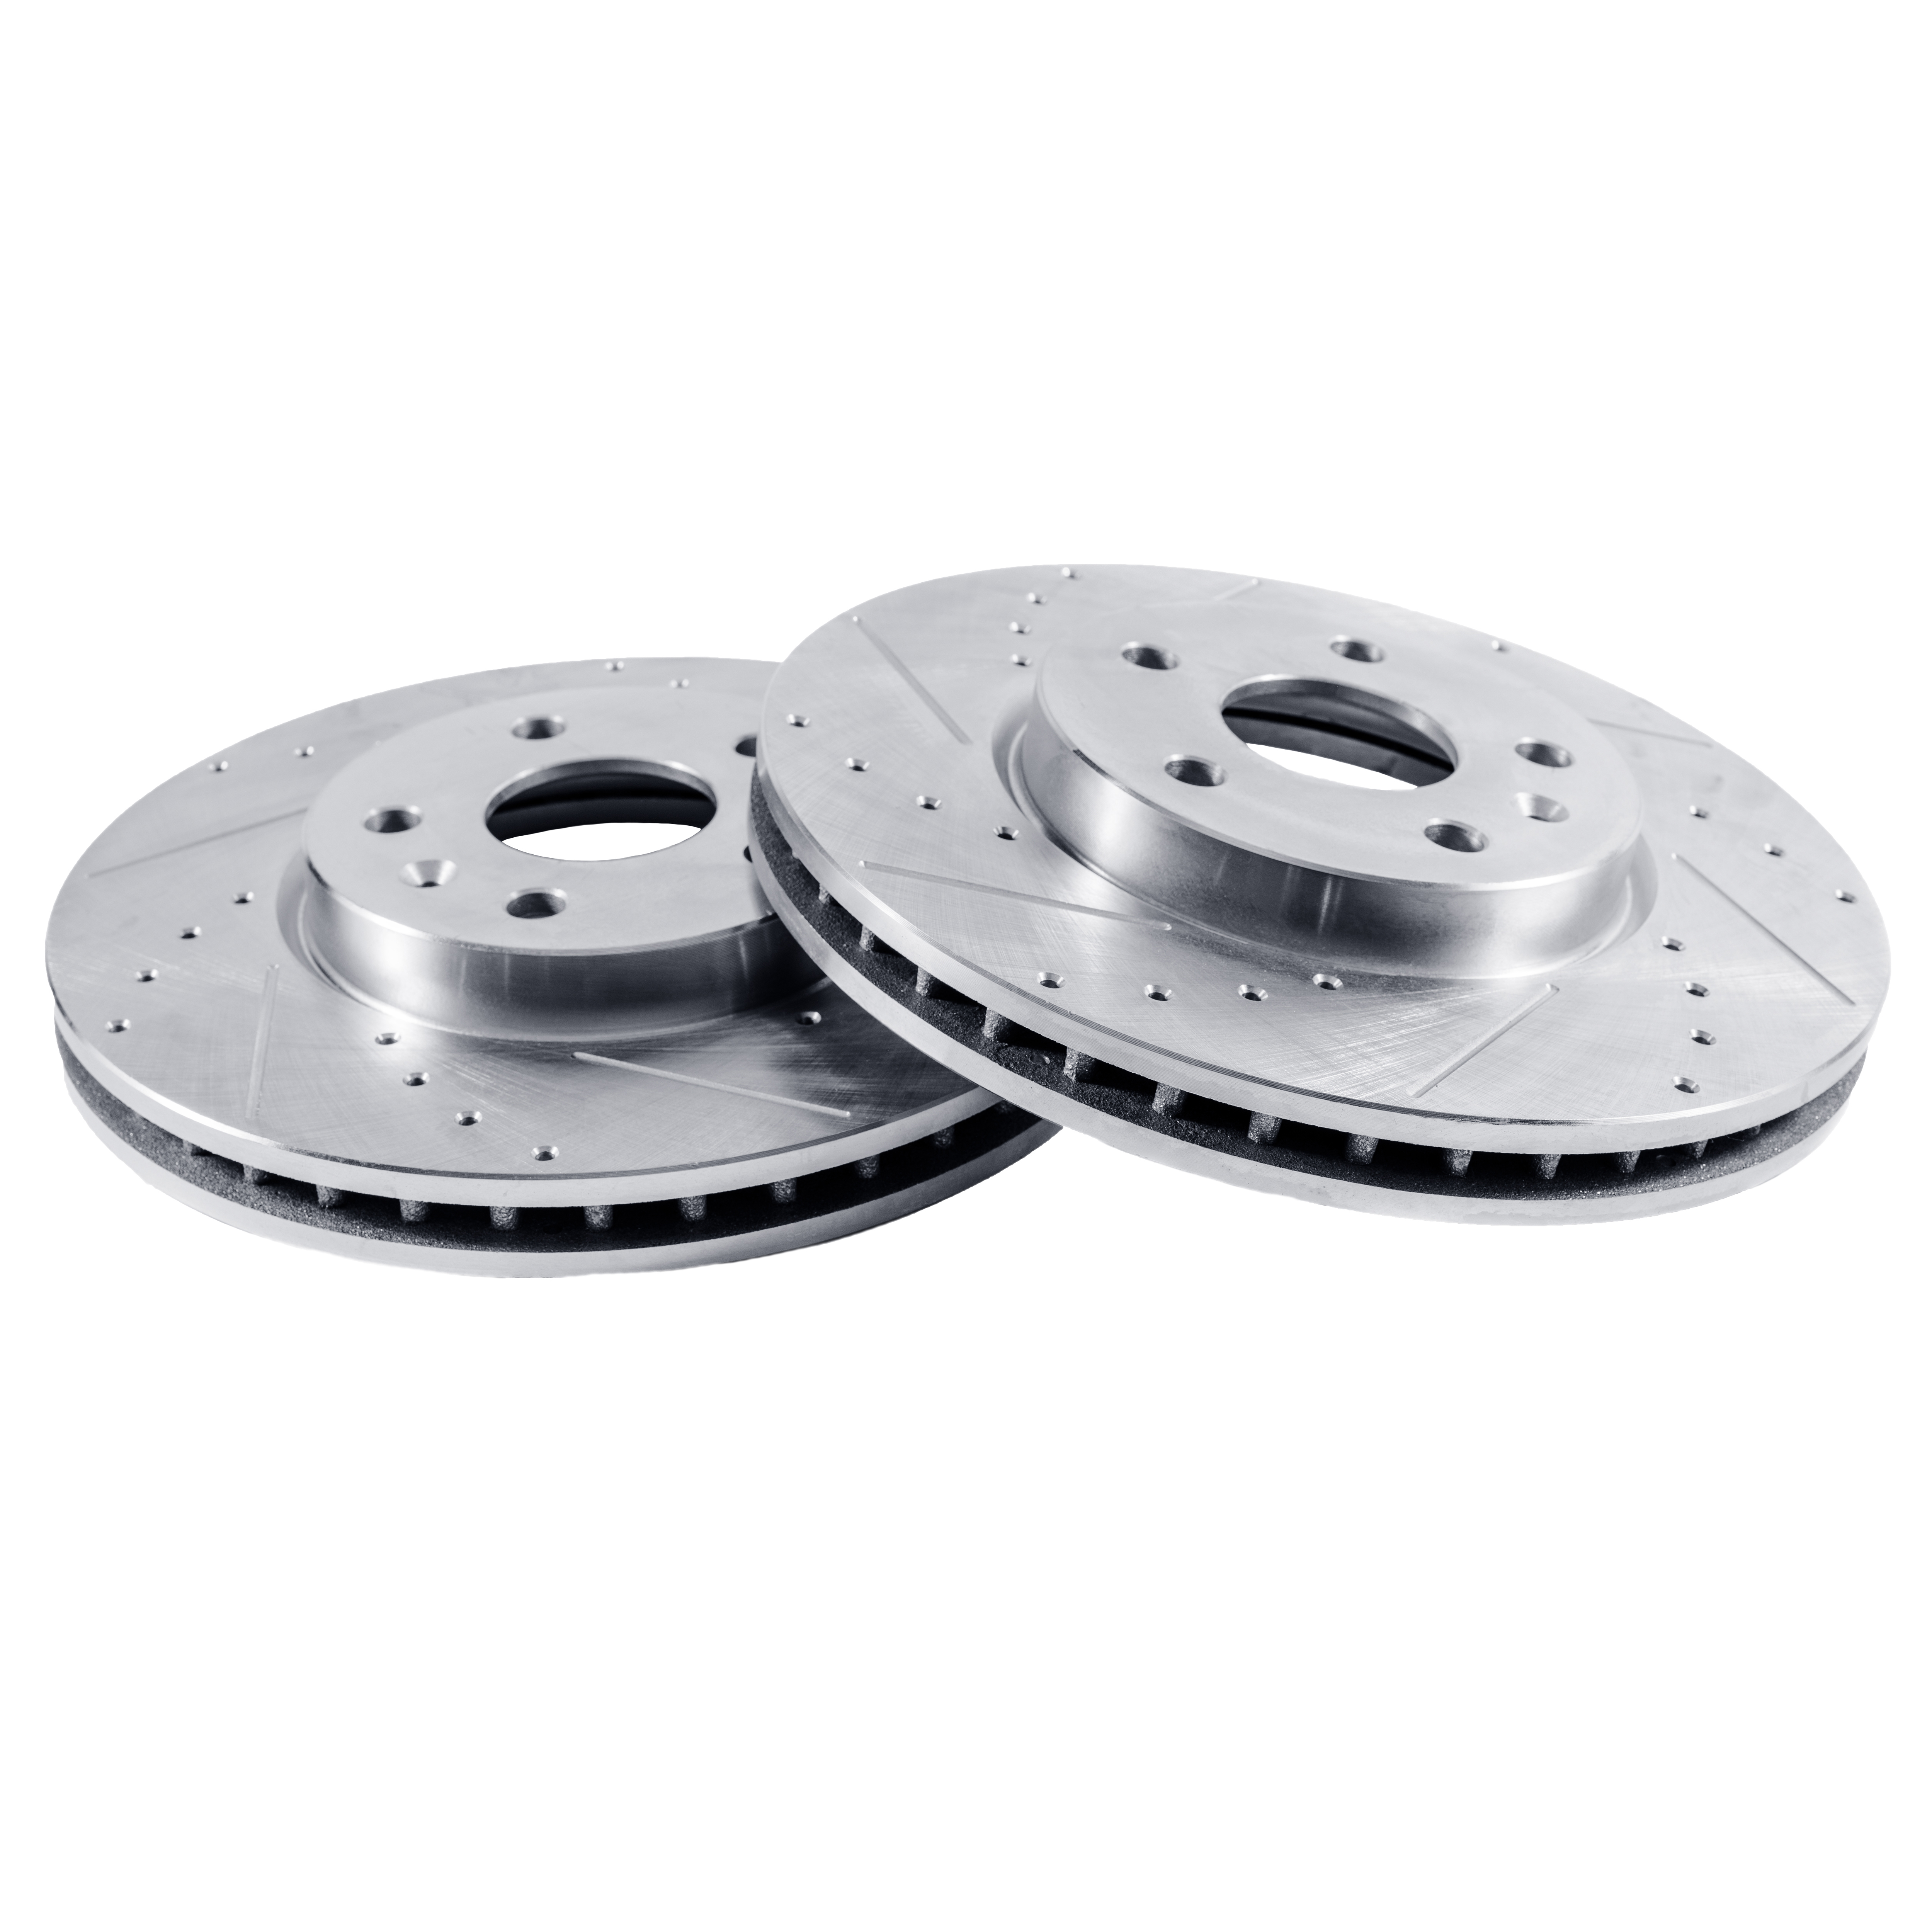 Front Performance Drilled Slotted Zinc Coated Disc Brake Rotor Pair for Hyundai